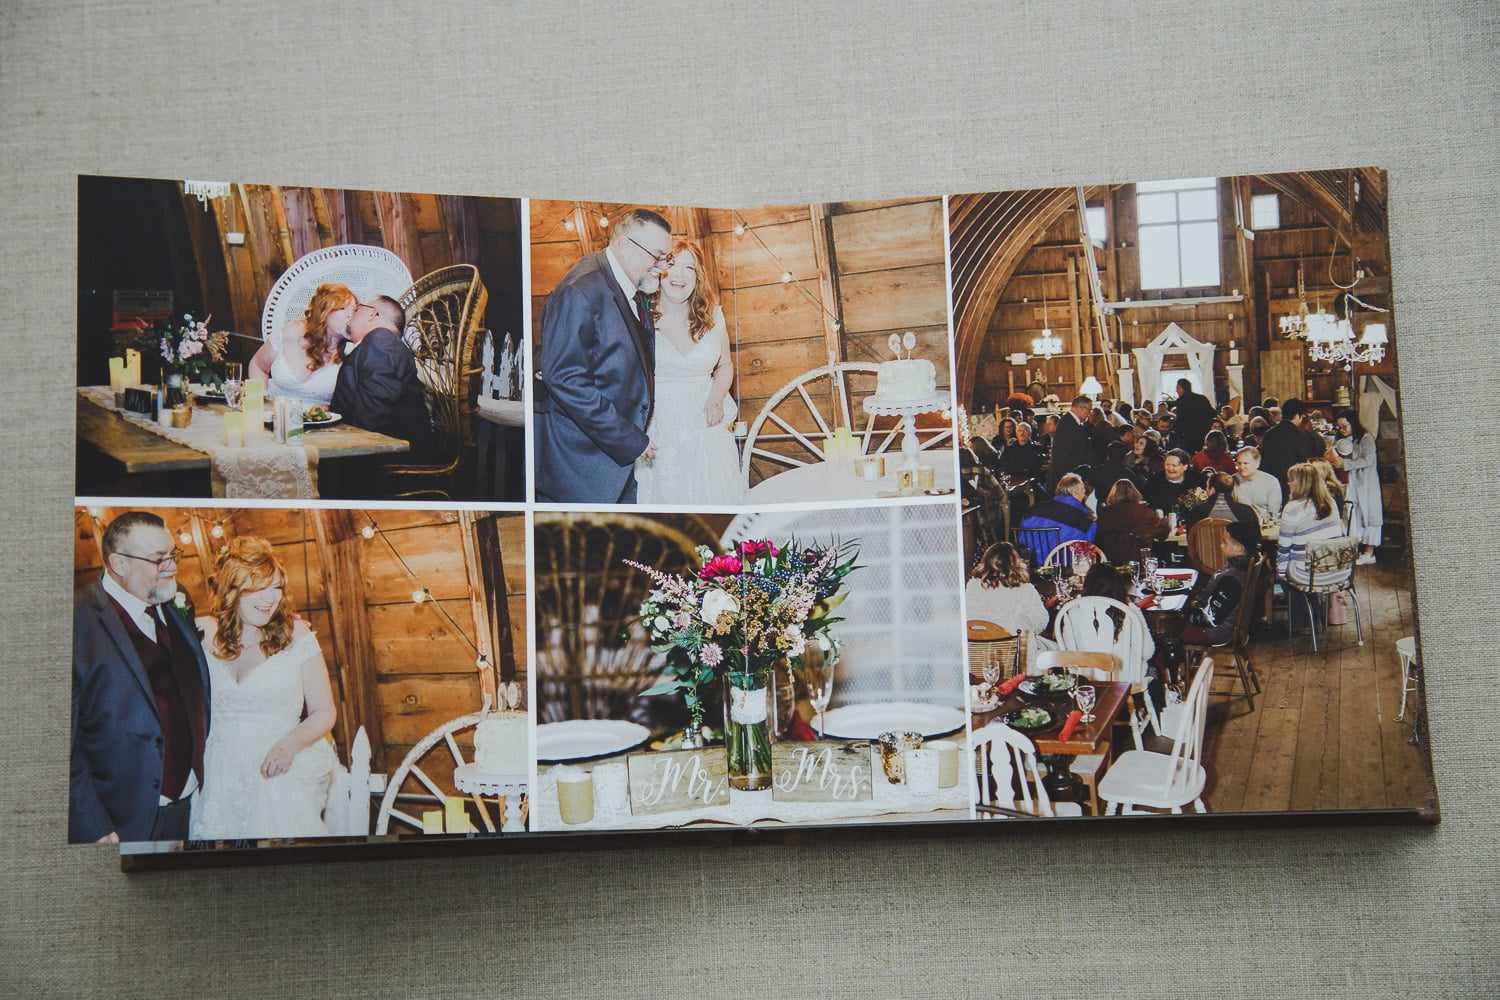 wedding album pages showing pictures of the reception decor